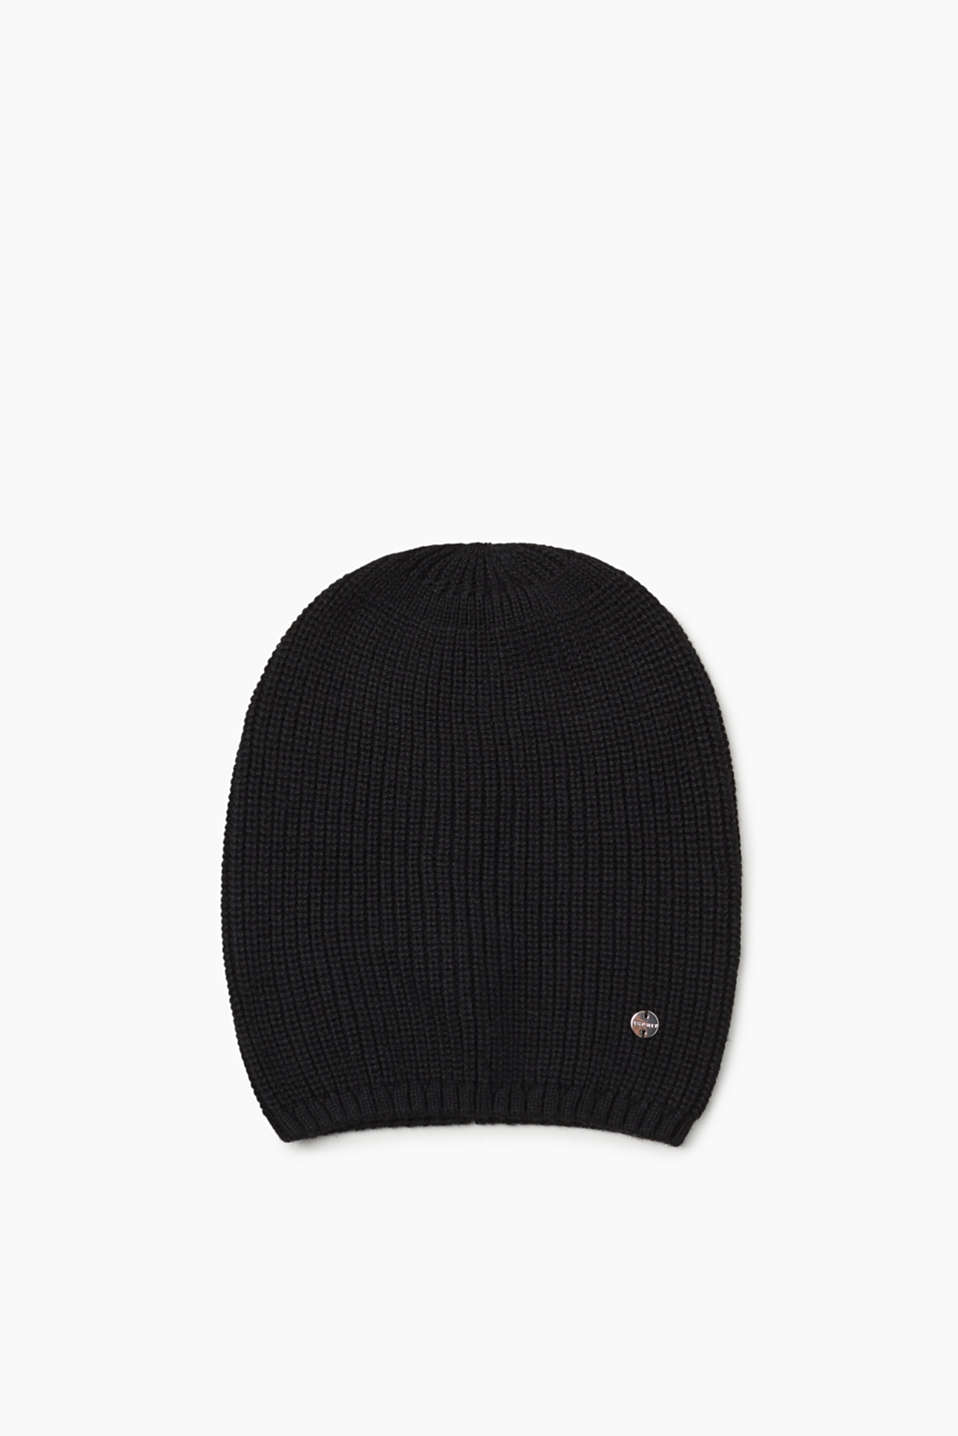 Esprit - Rib knit beanie containing cashmere